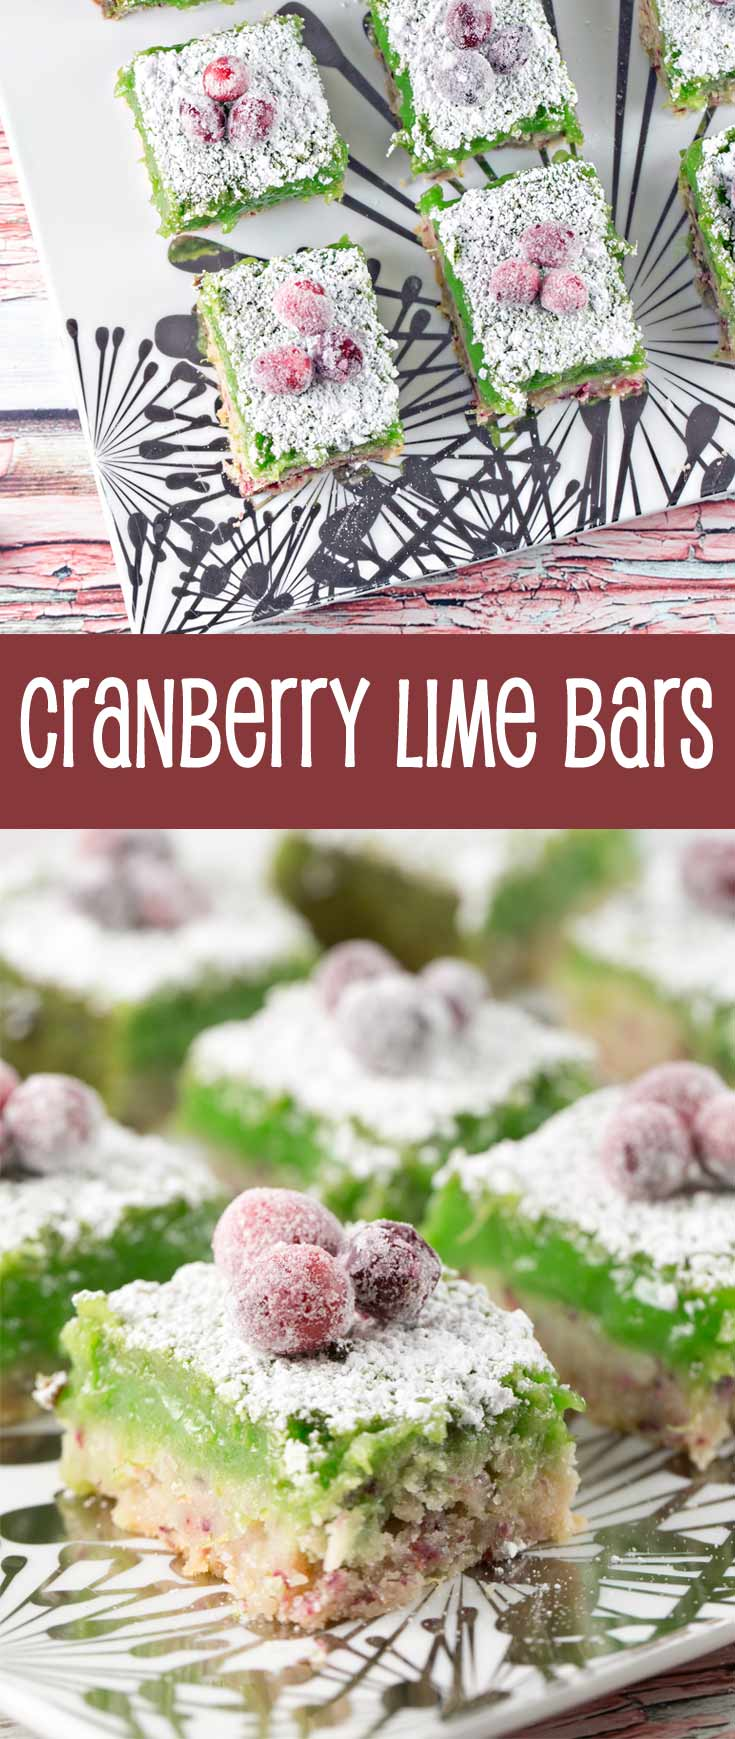 Cranberry Lime Bars: adios, bland lime bars - these cranberry lime bars pack a serious sweet-tart citrusy punch! {Bunsen Burner Bakery}